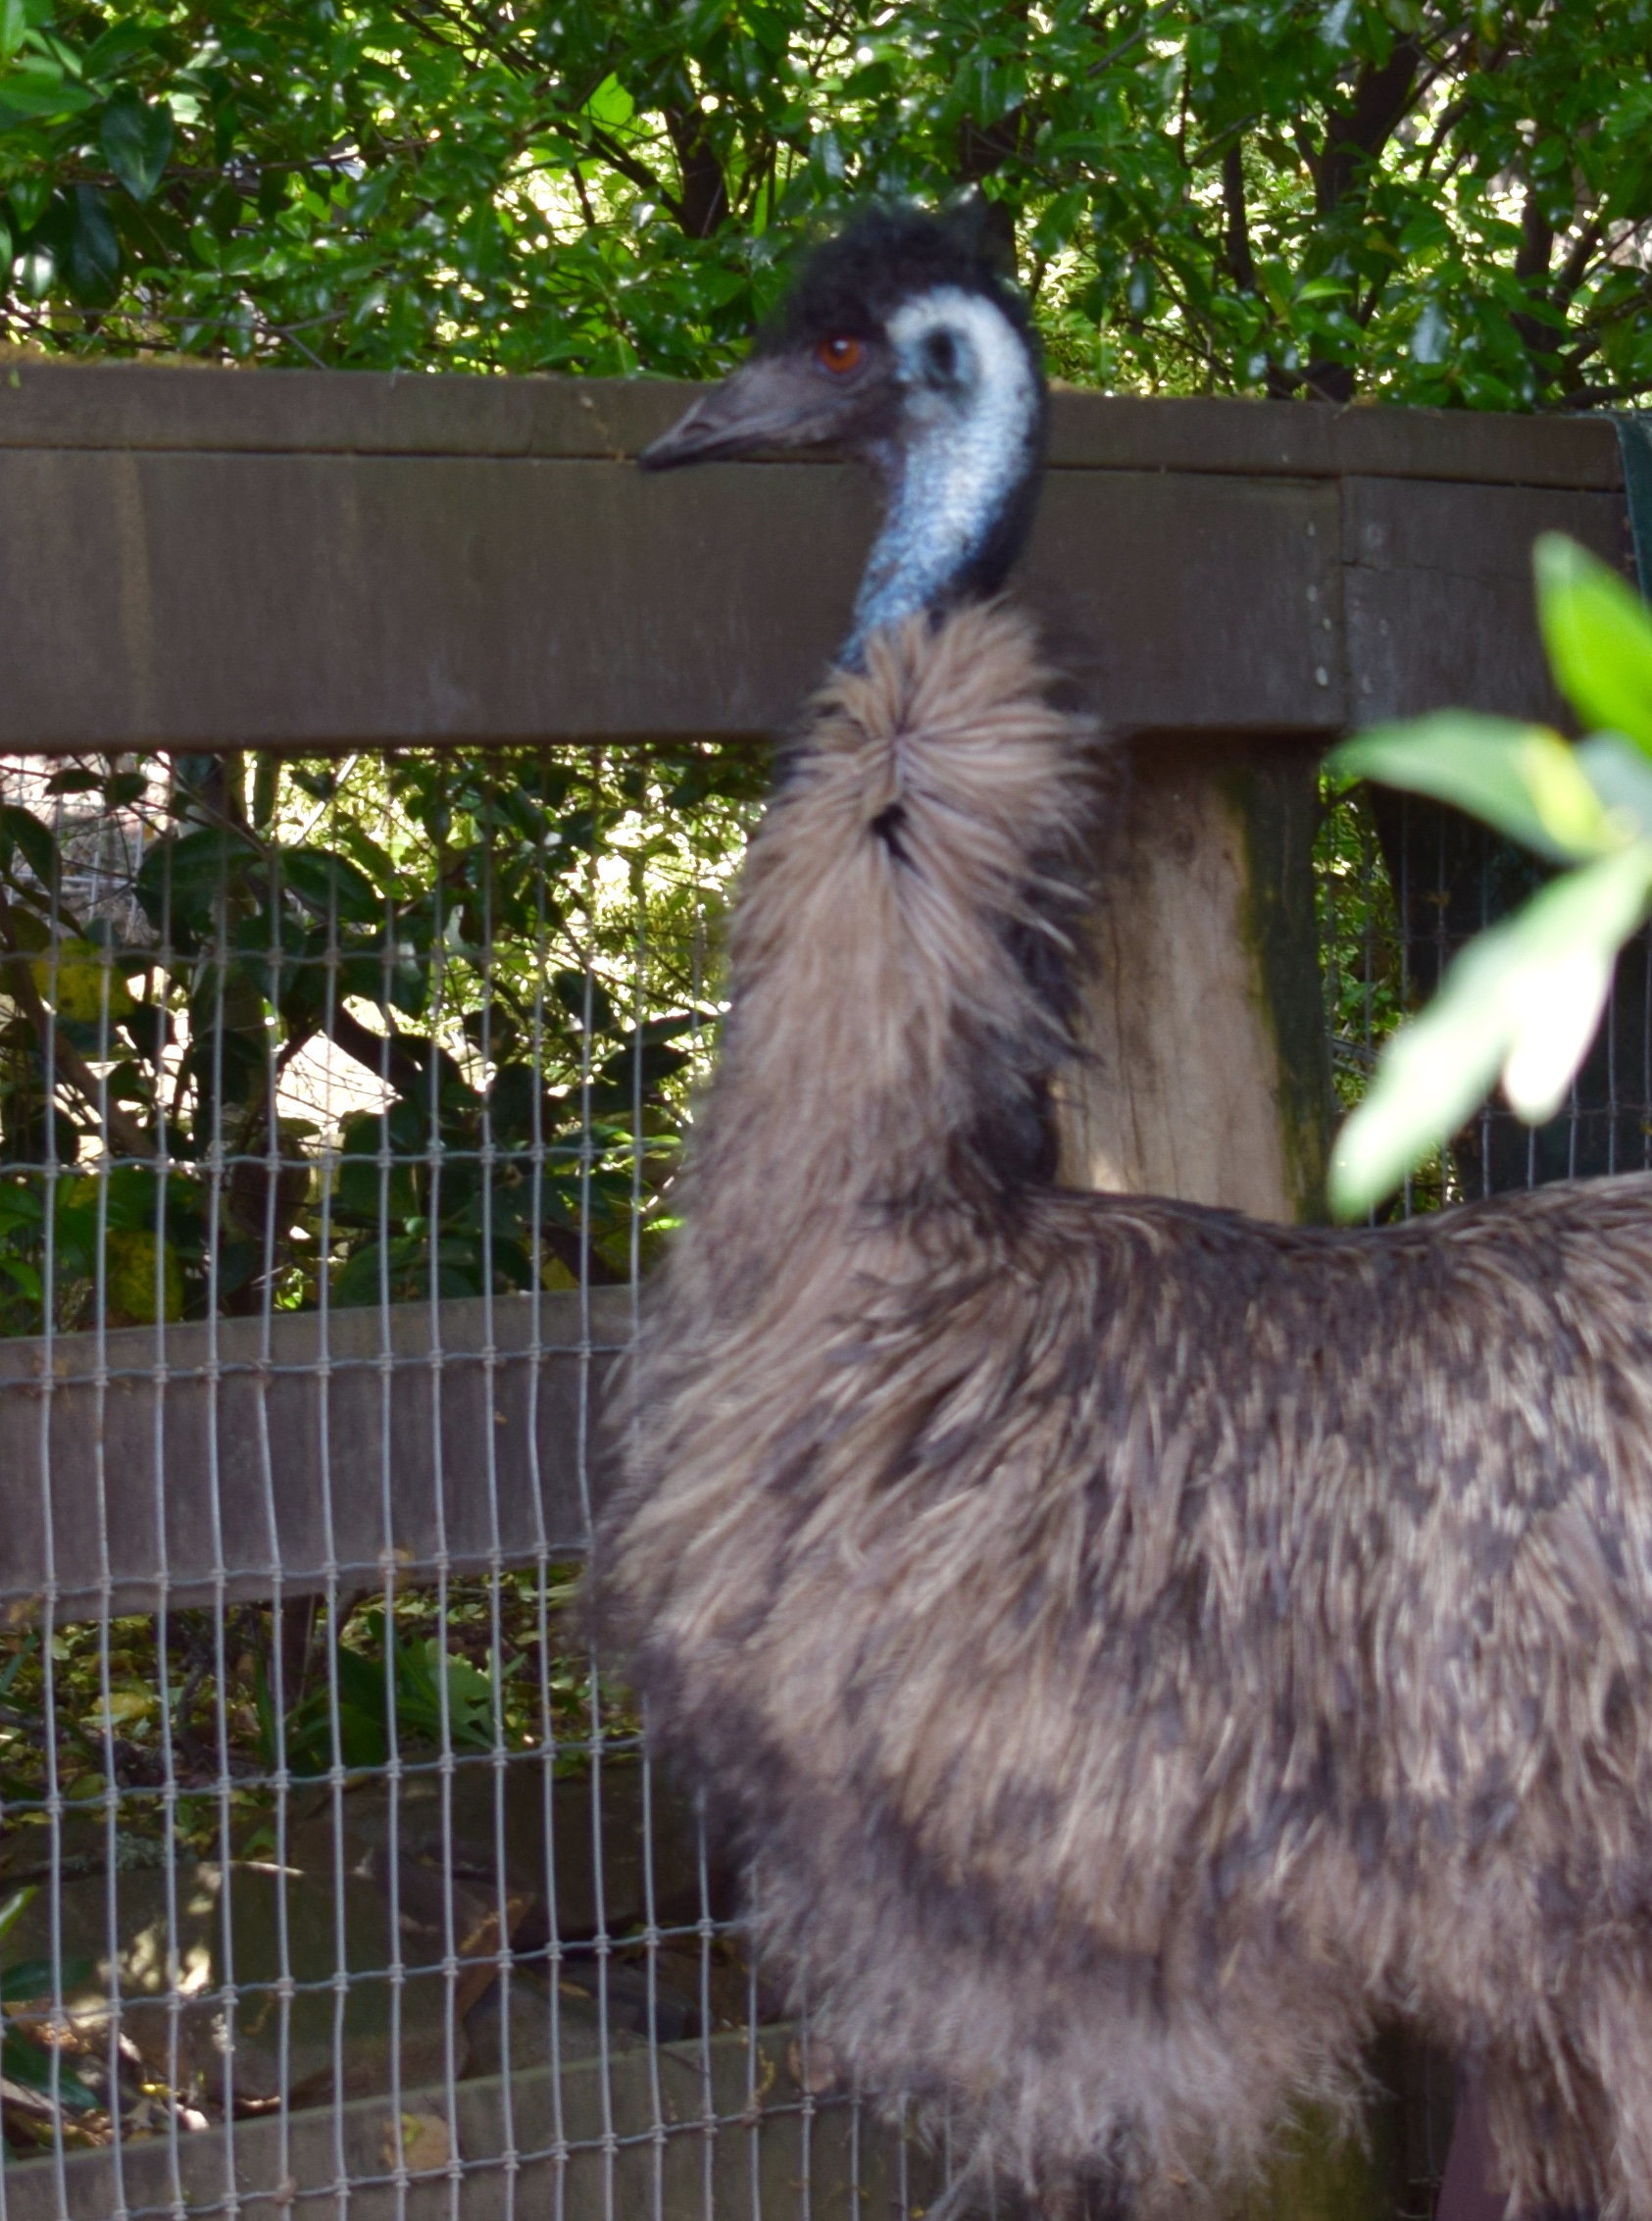 Our emu is named Doris, which suits her fabulous personality to a T!  Doris was found racing around a golf course in a panic after being hit by a car.  Once a group of volunteers managed to corral her, Doris was checked by a vet and brought to Lyon Ranch.  Despite her rough start Doris has proven to be very affectionate and curious.